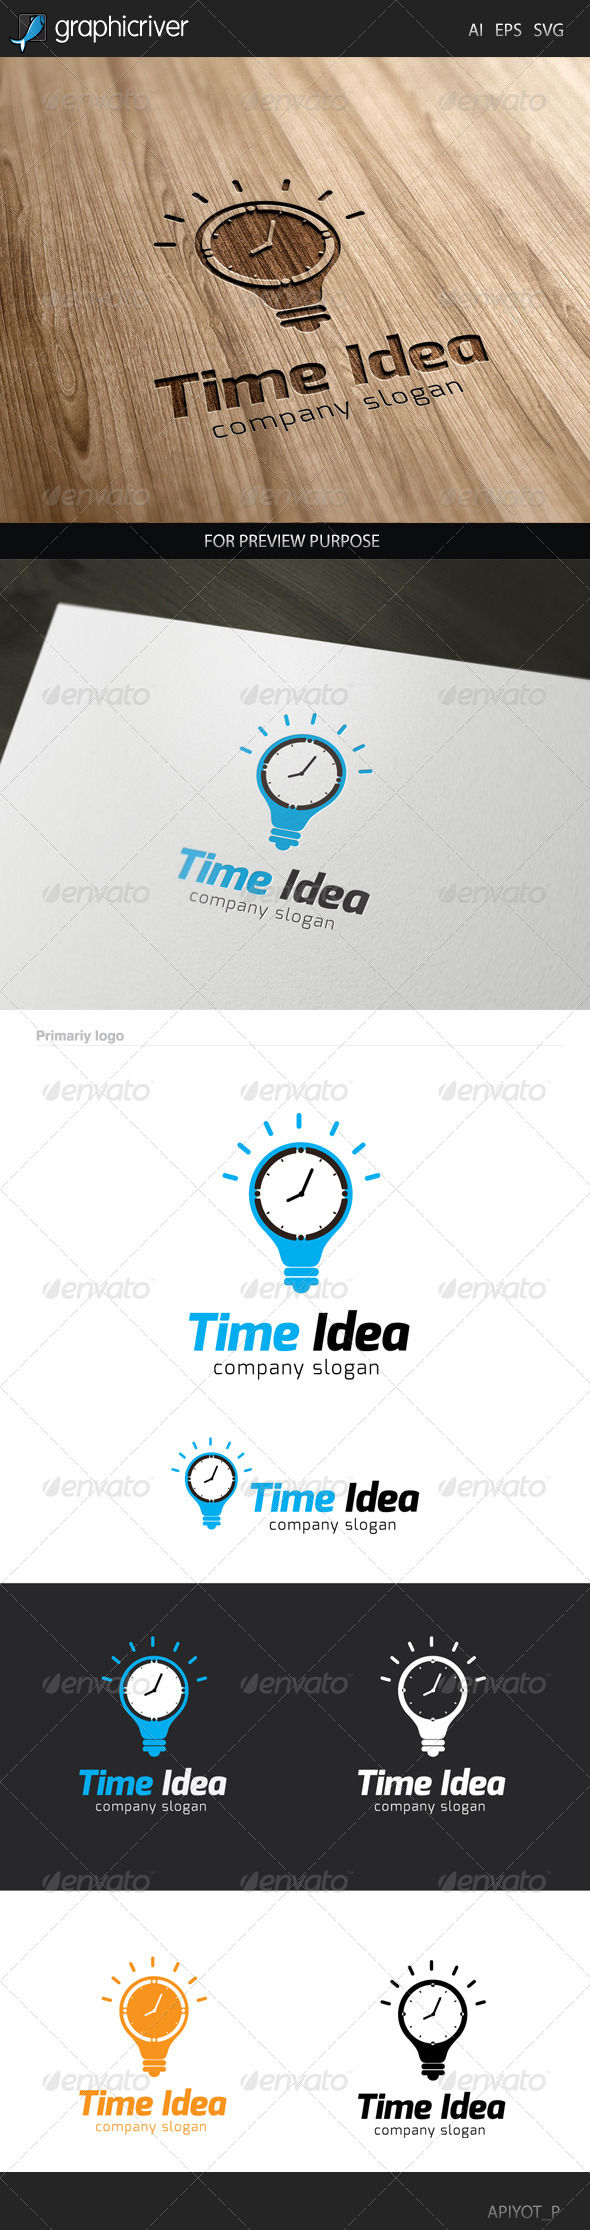 GraphicRiver Time Idea Logo 8320629